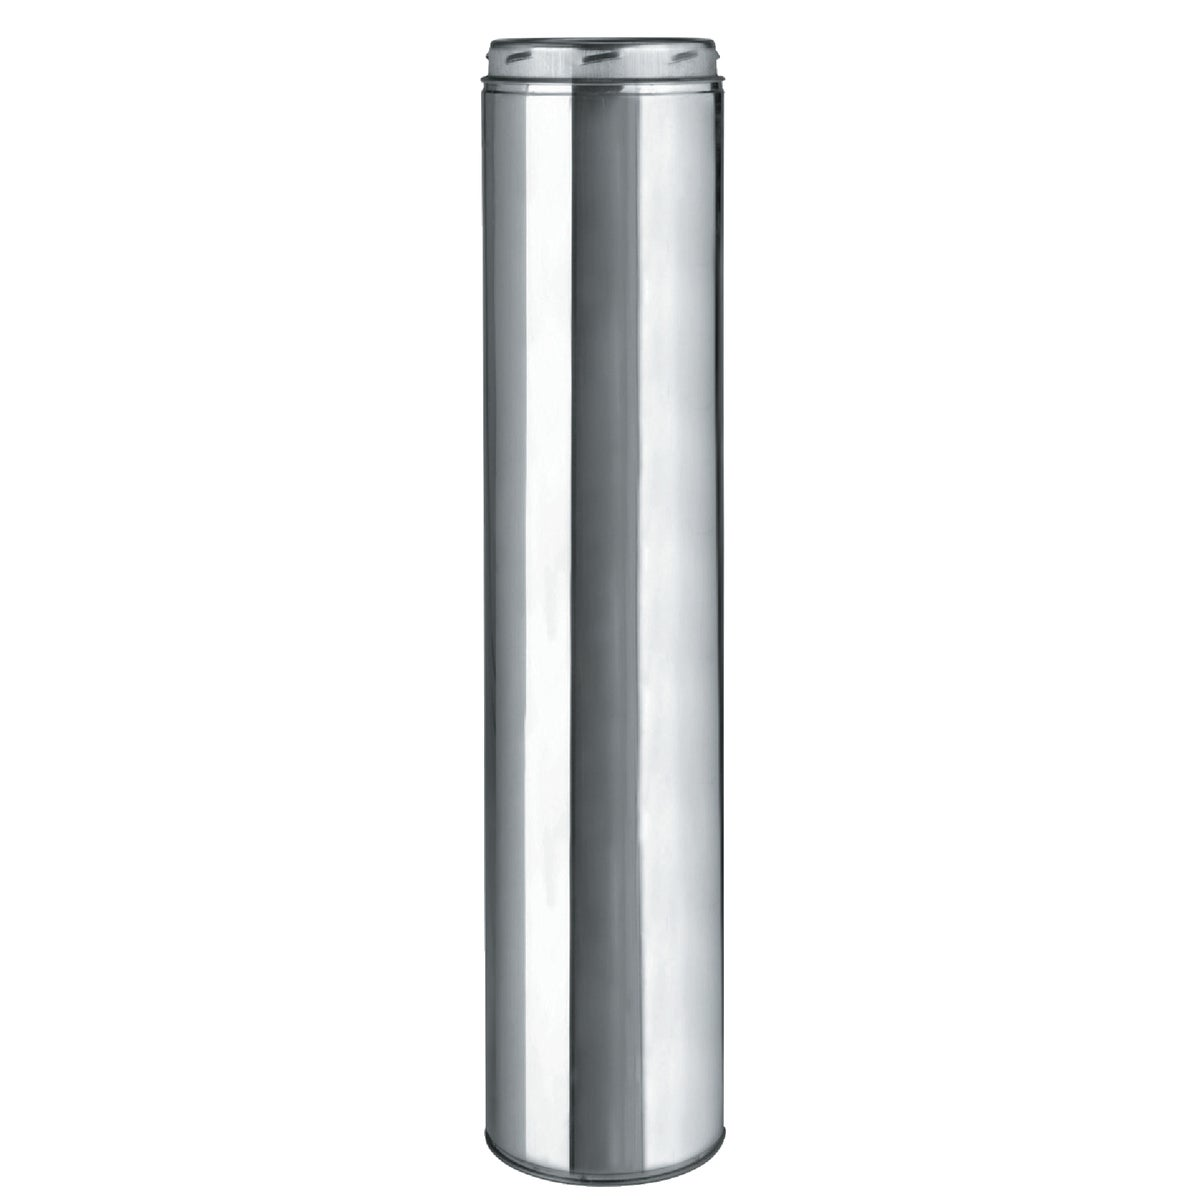 SELKIRK Stainless Steel Insulated Pipe